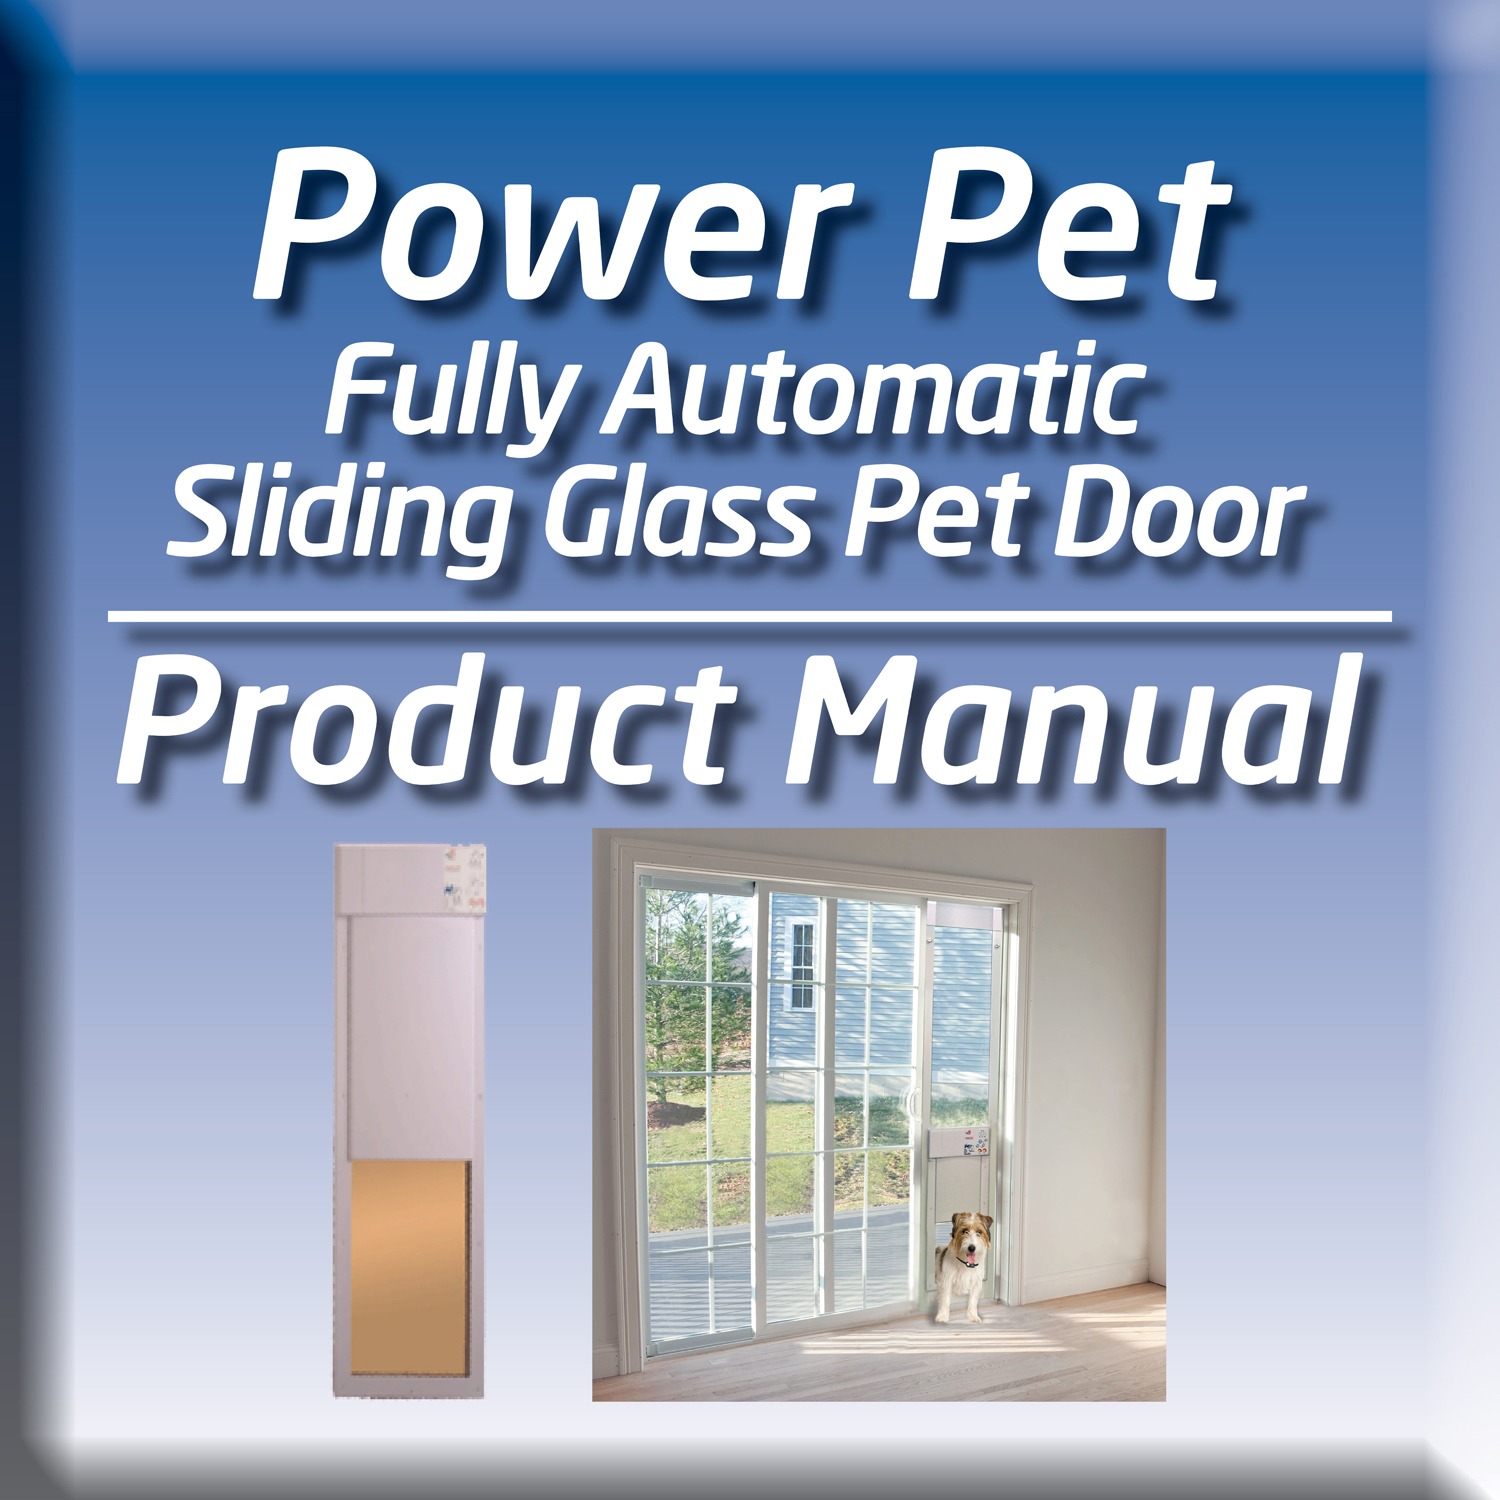 Power Pet Medium Electronic Sliding Glass Patio Pet Door